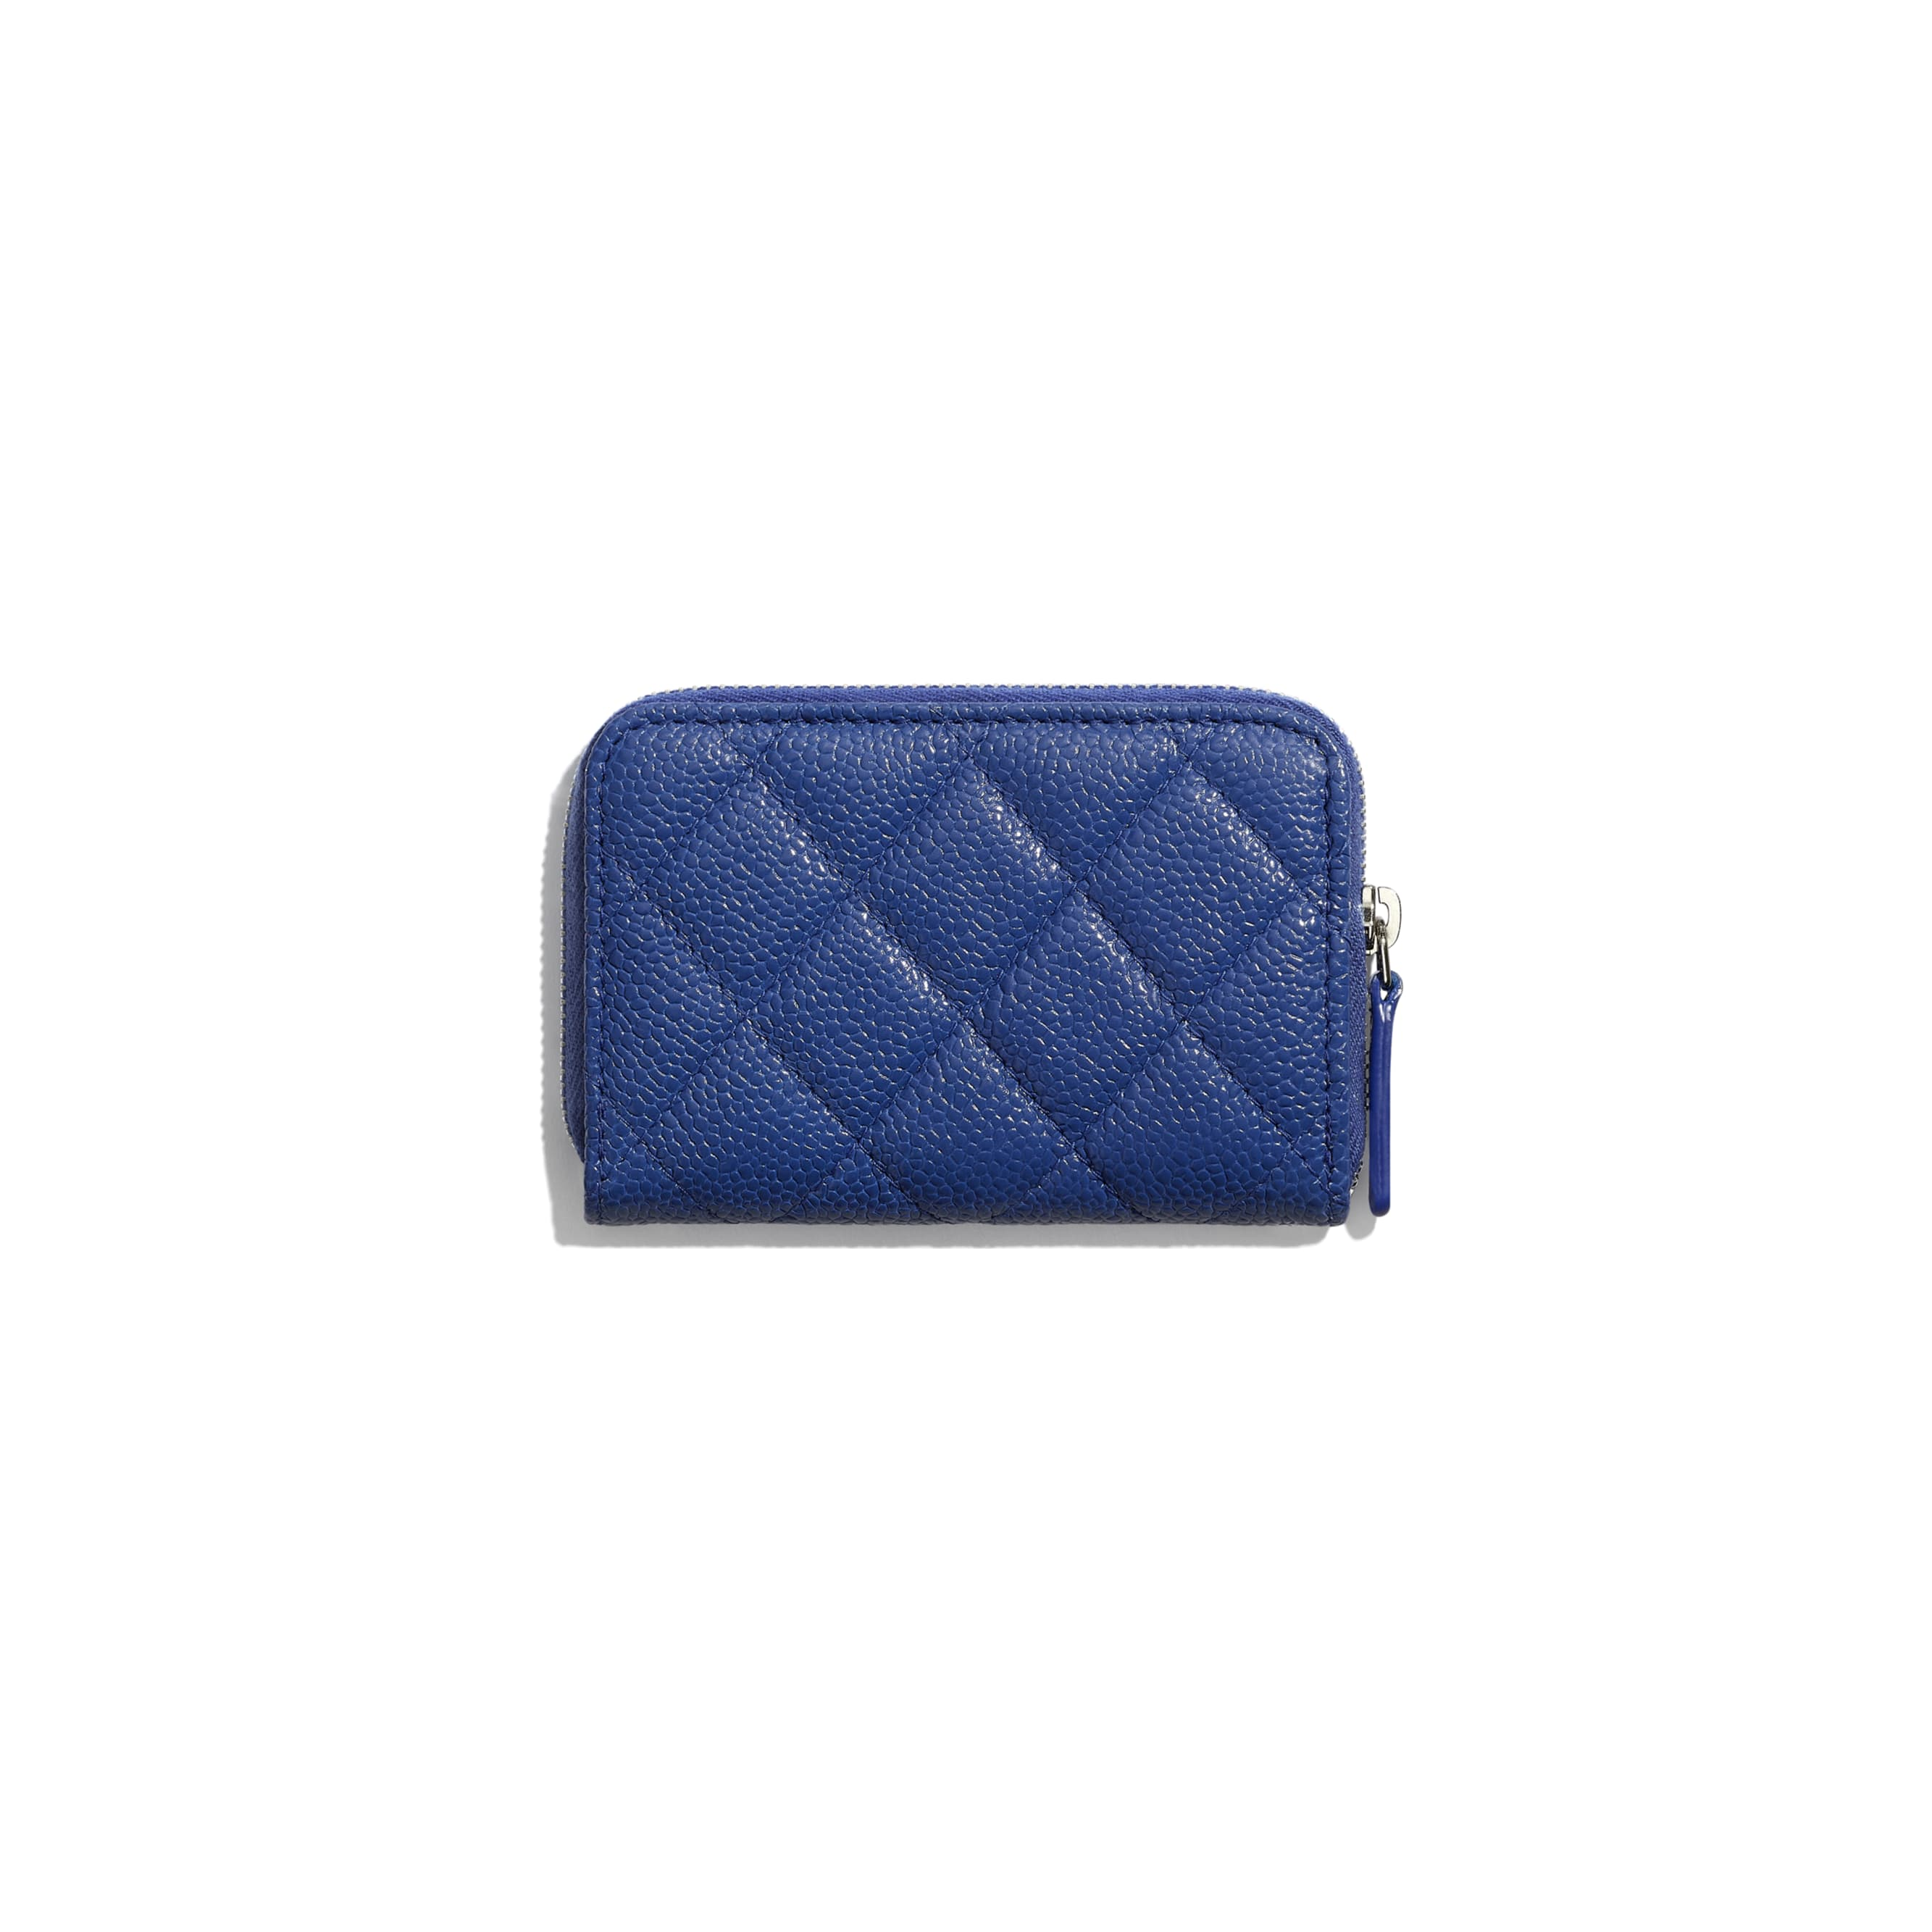 Zipped Coin Purse - Dark Blue - Grained Calfskin & Lacquered Metal - CHANEL - Alternative view - see standard sized version